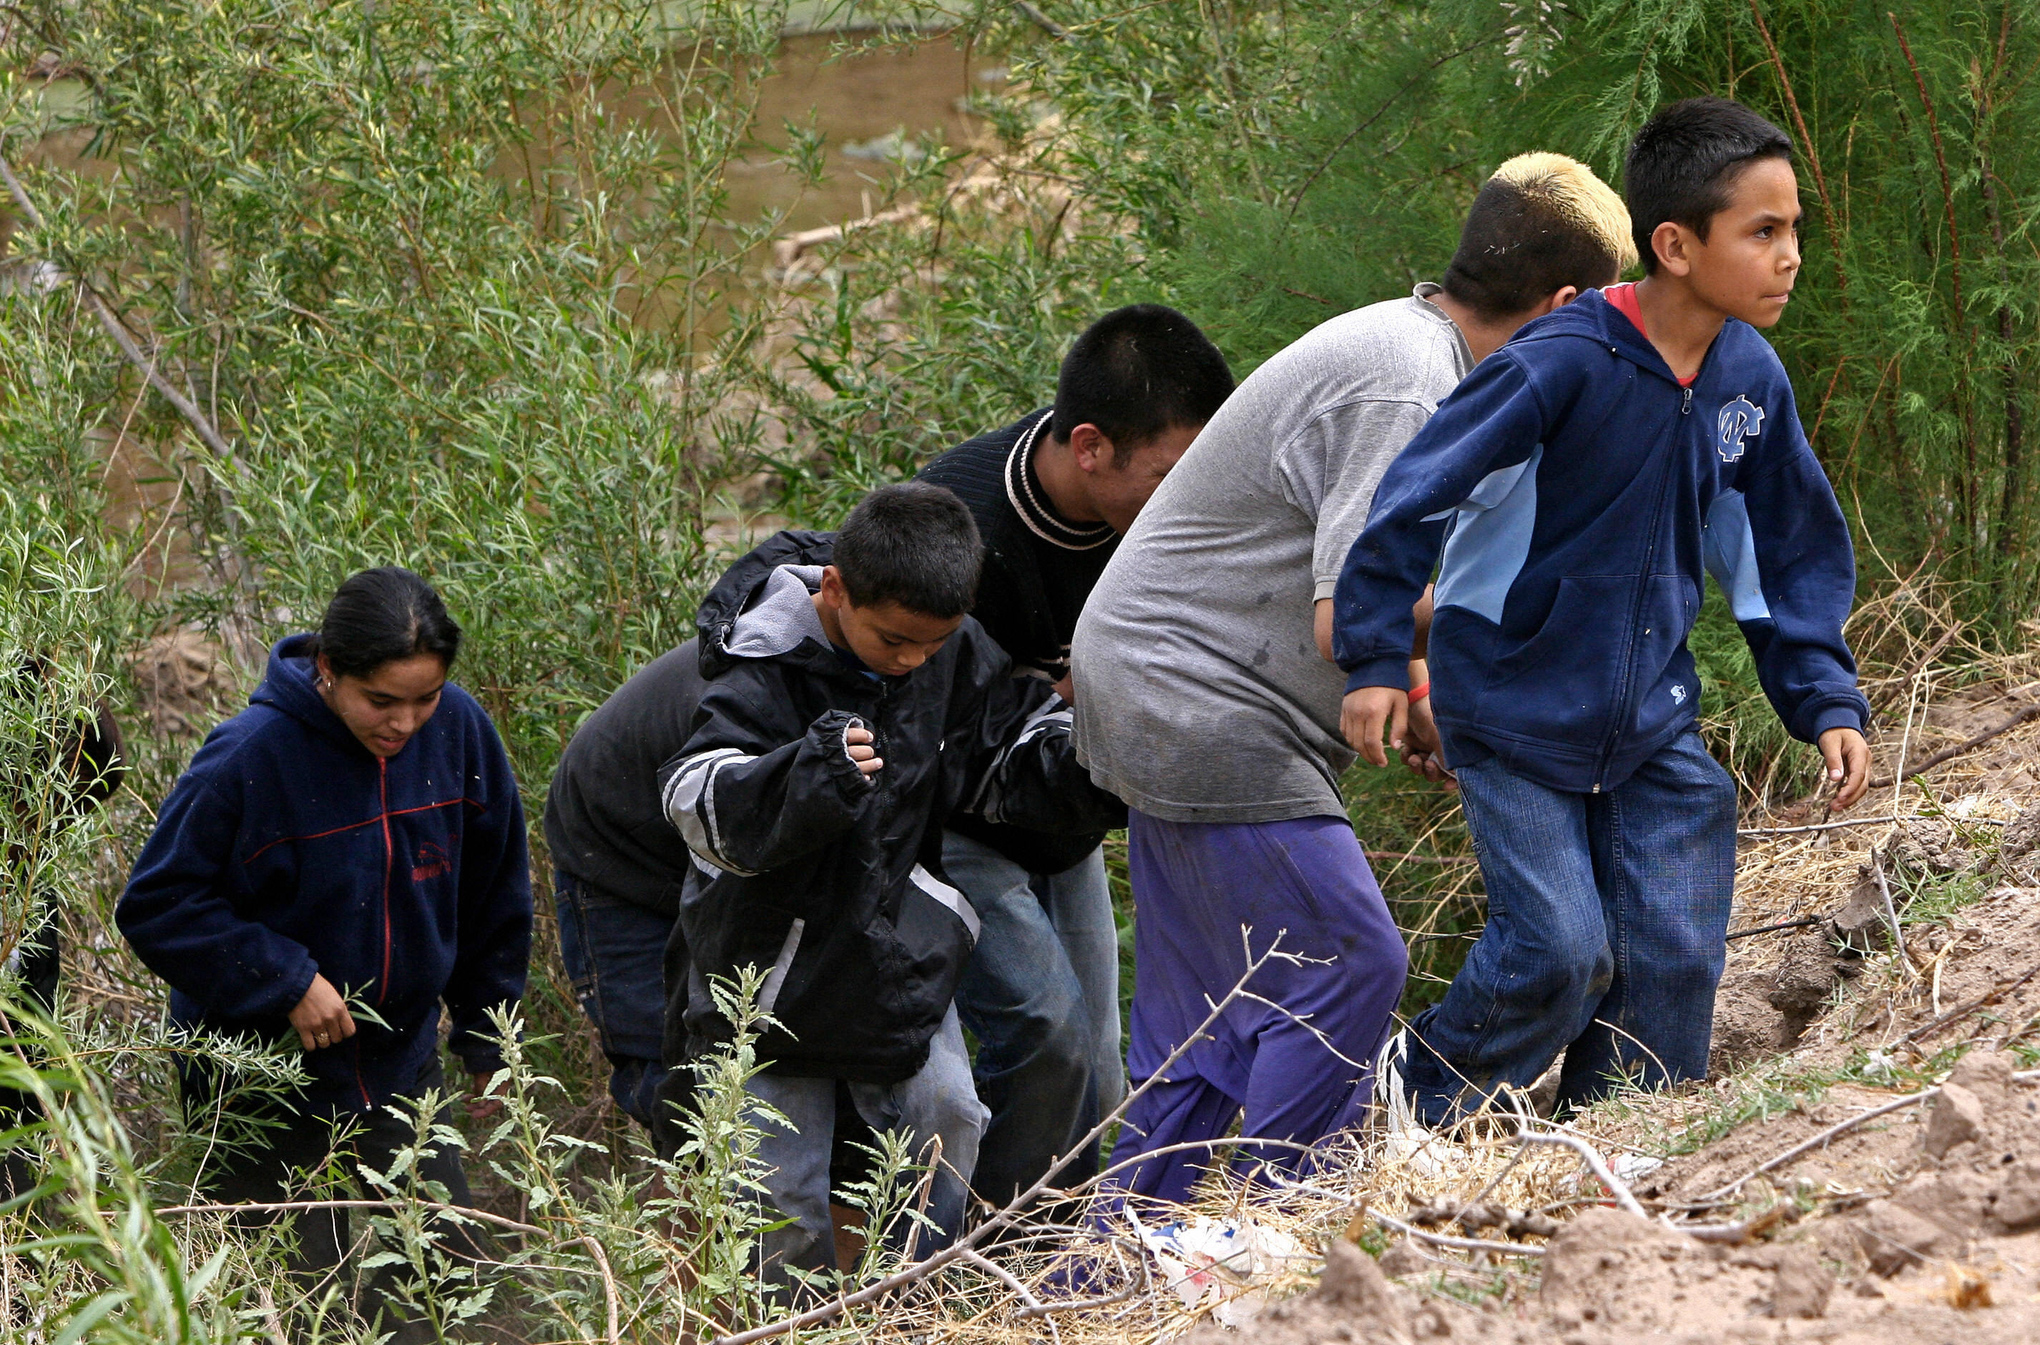 MEXICO-MIGRATION - An entire family emerges from the bushes on the Mexican bank of the Rio Bravo --reduced in that particular point to a narrow stream-- 11 April, 2006 near Ciudad Juarez, Mexico. Thousands of illegal immigrants cross the border to enter the United States every day in search of better opportunities. AFP PHOTO/Omar TORRES (Photo credit should read OMAR TORRES/AFP/Getty Images)